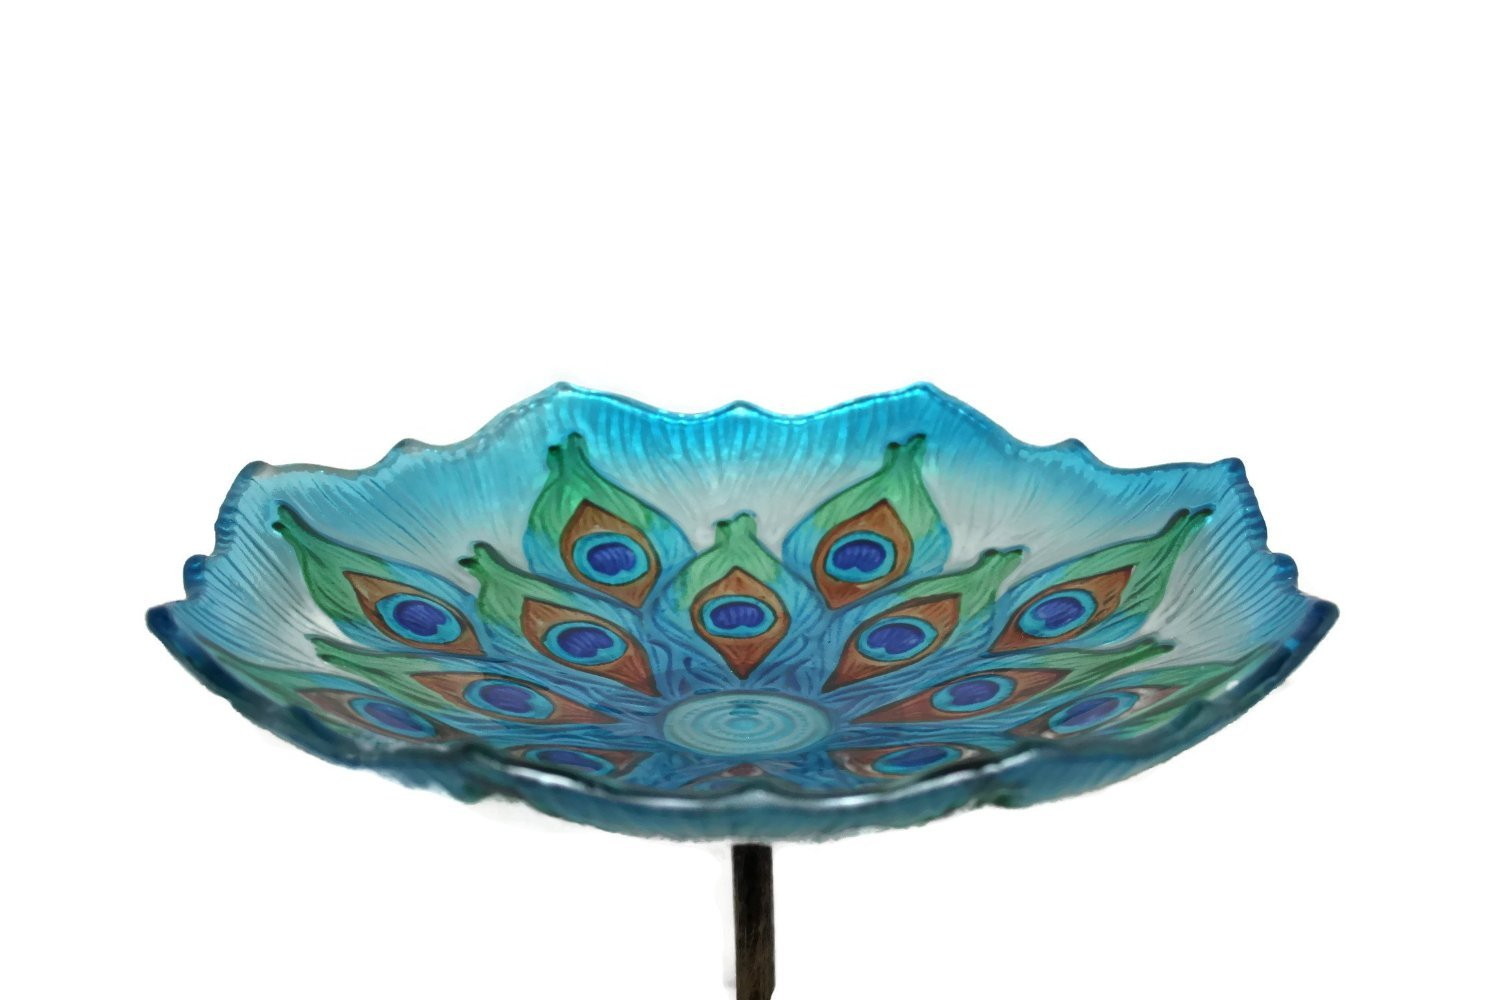 "Evergreen Peacock Glass Bird Bath Bowl with Metal Stake - 11""L x 11'' W x 26.75'' H"